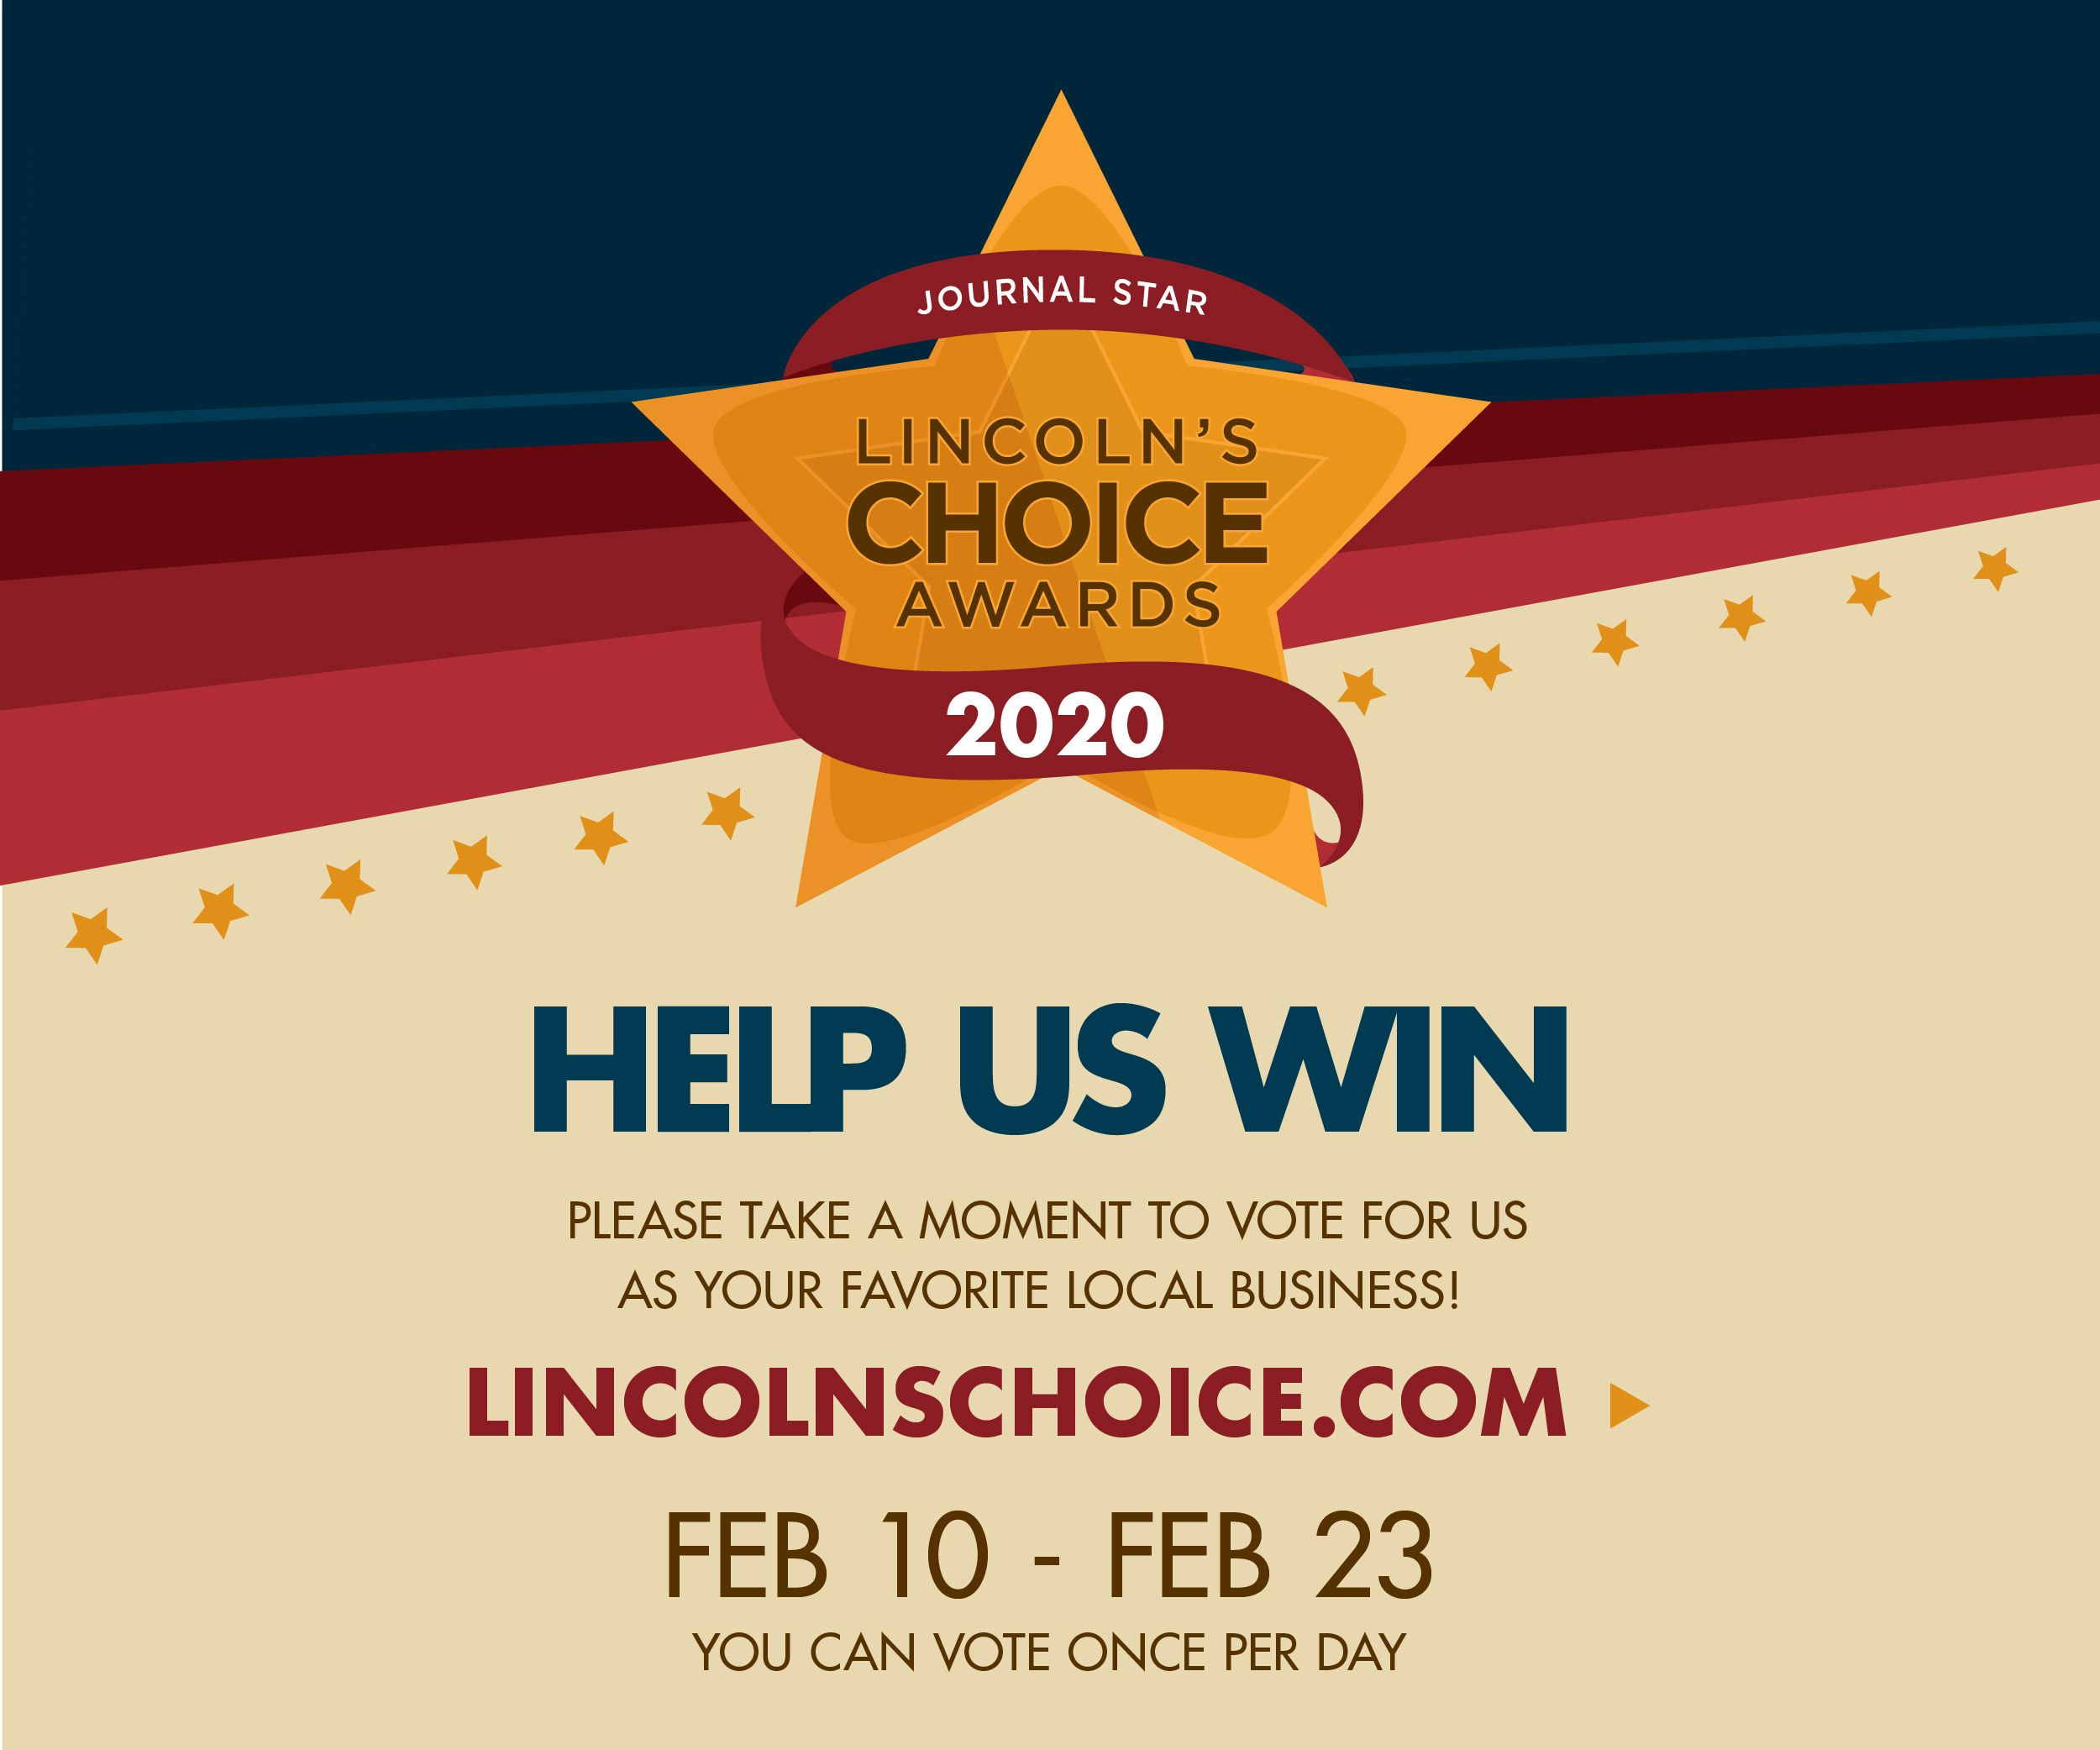 Vote Tabitha for Lincoln's Choice Awards